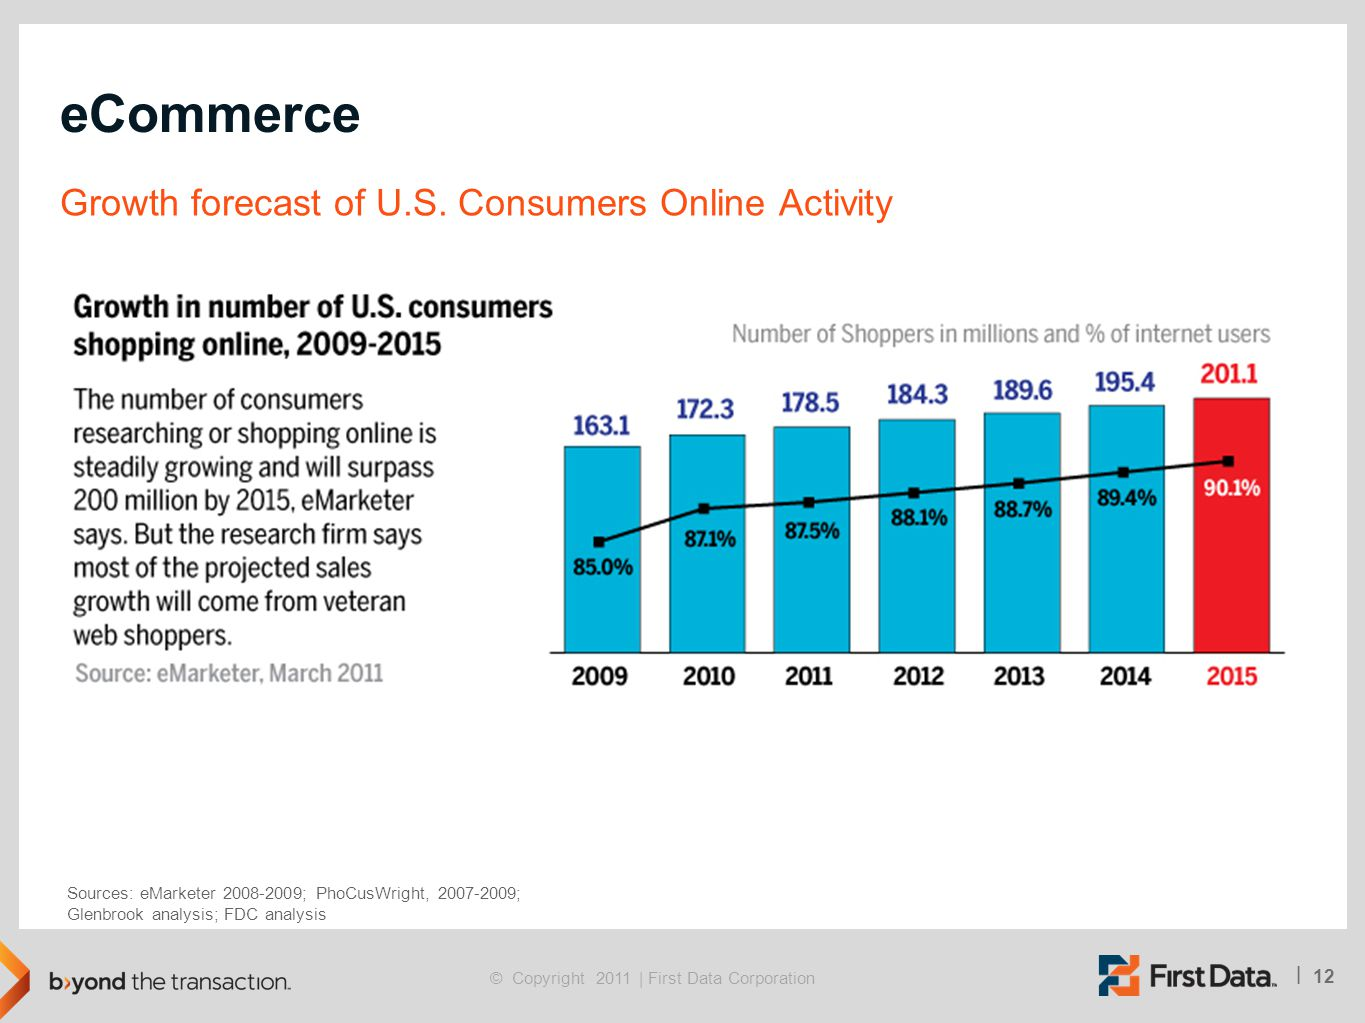 eCommerce Growth forecast of U.S. Consumers Online Activity